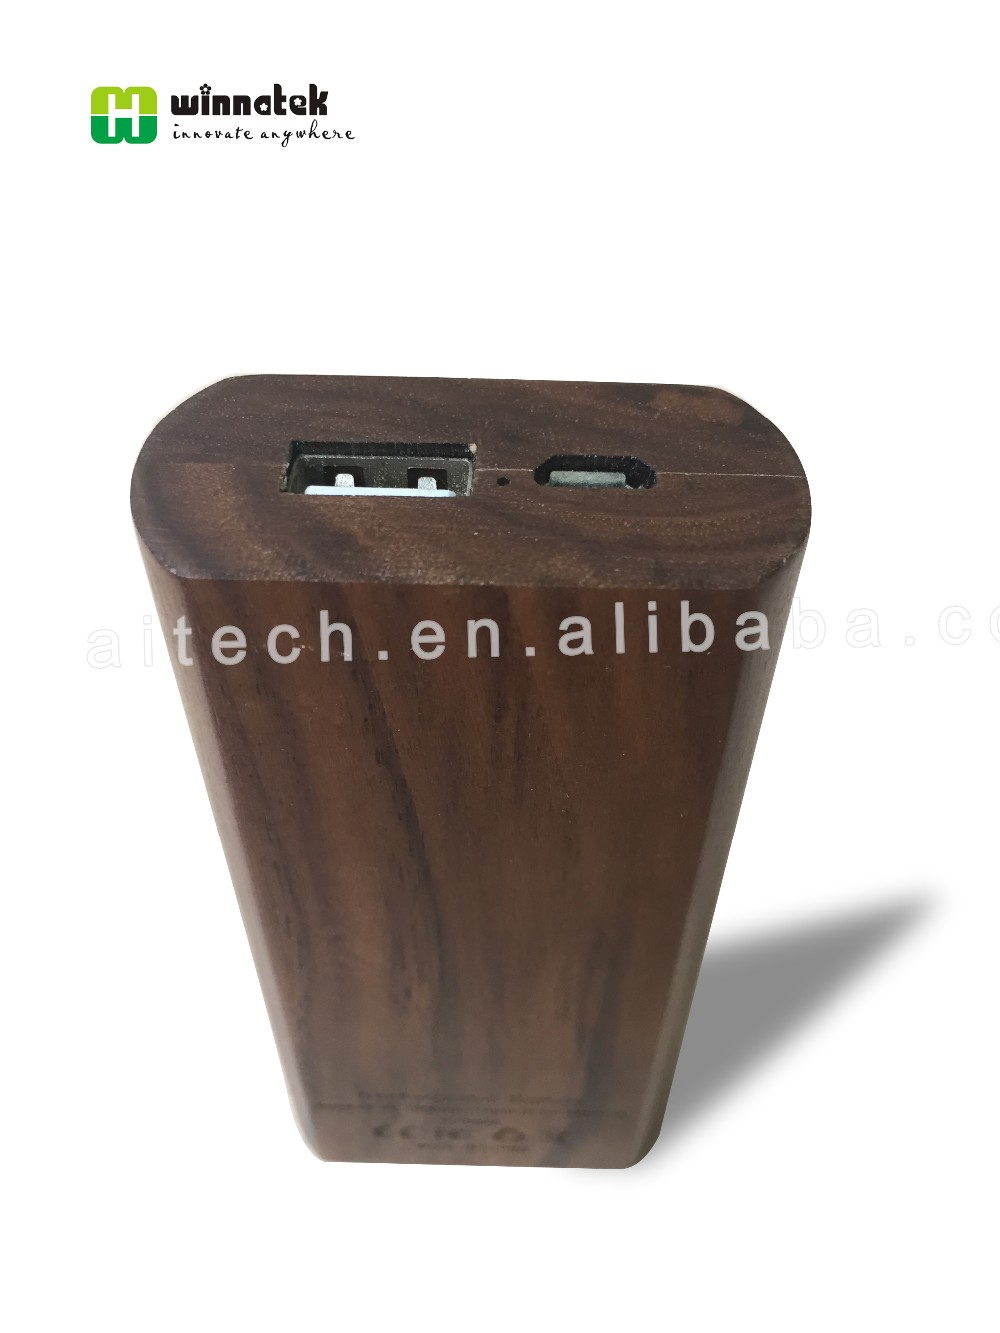 Power Bank Wood 5200mah, Wooden Charger Factory, Wood Power Bank for smartphone